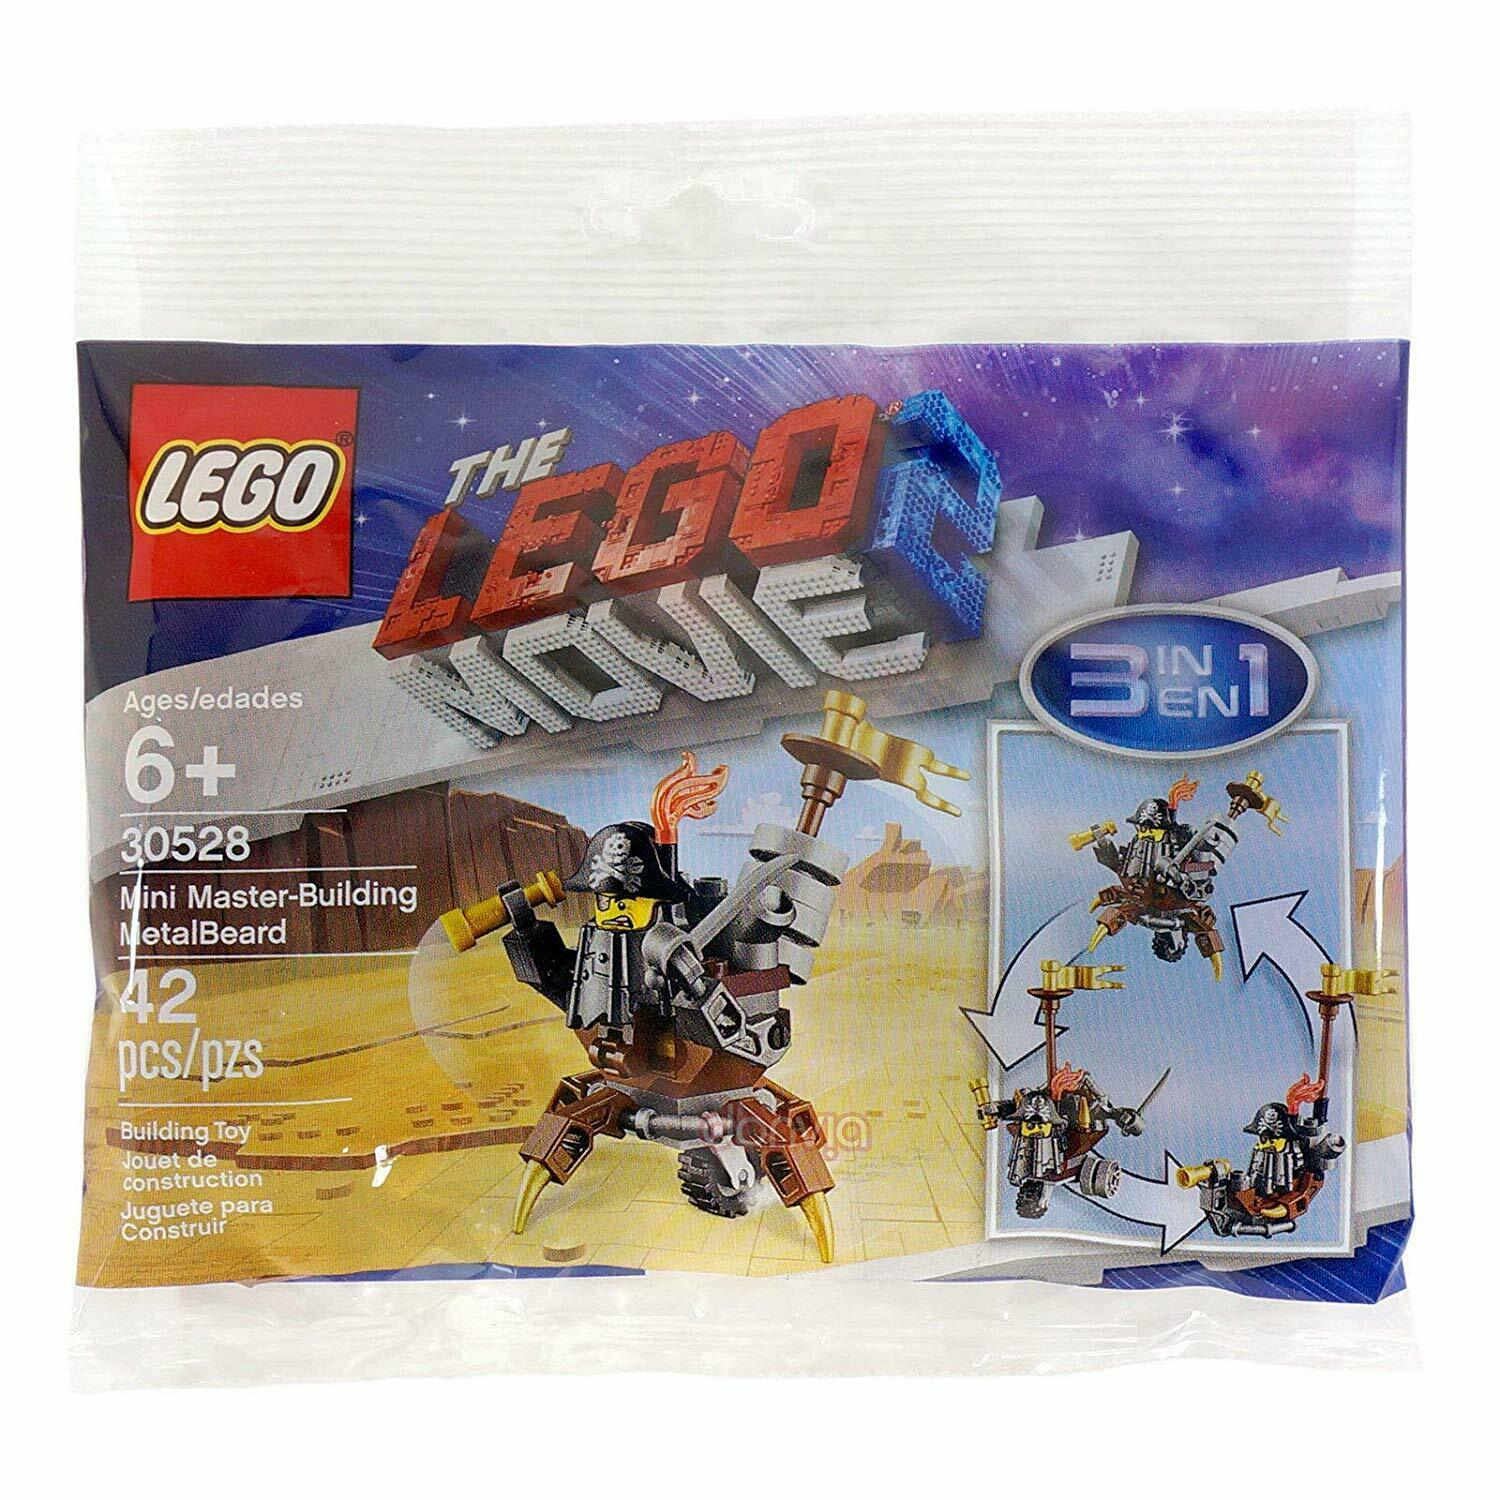 Lego 30528 Movie Metalbeard 2 Lot XiuZPk